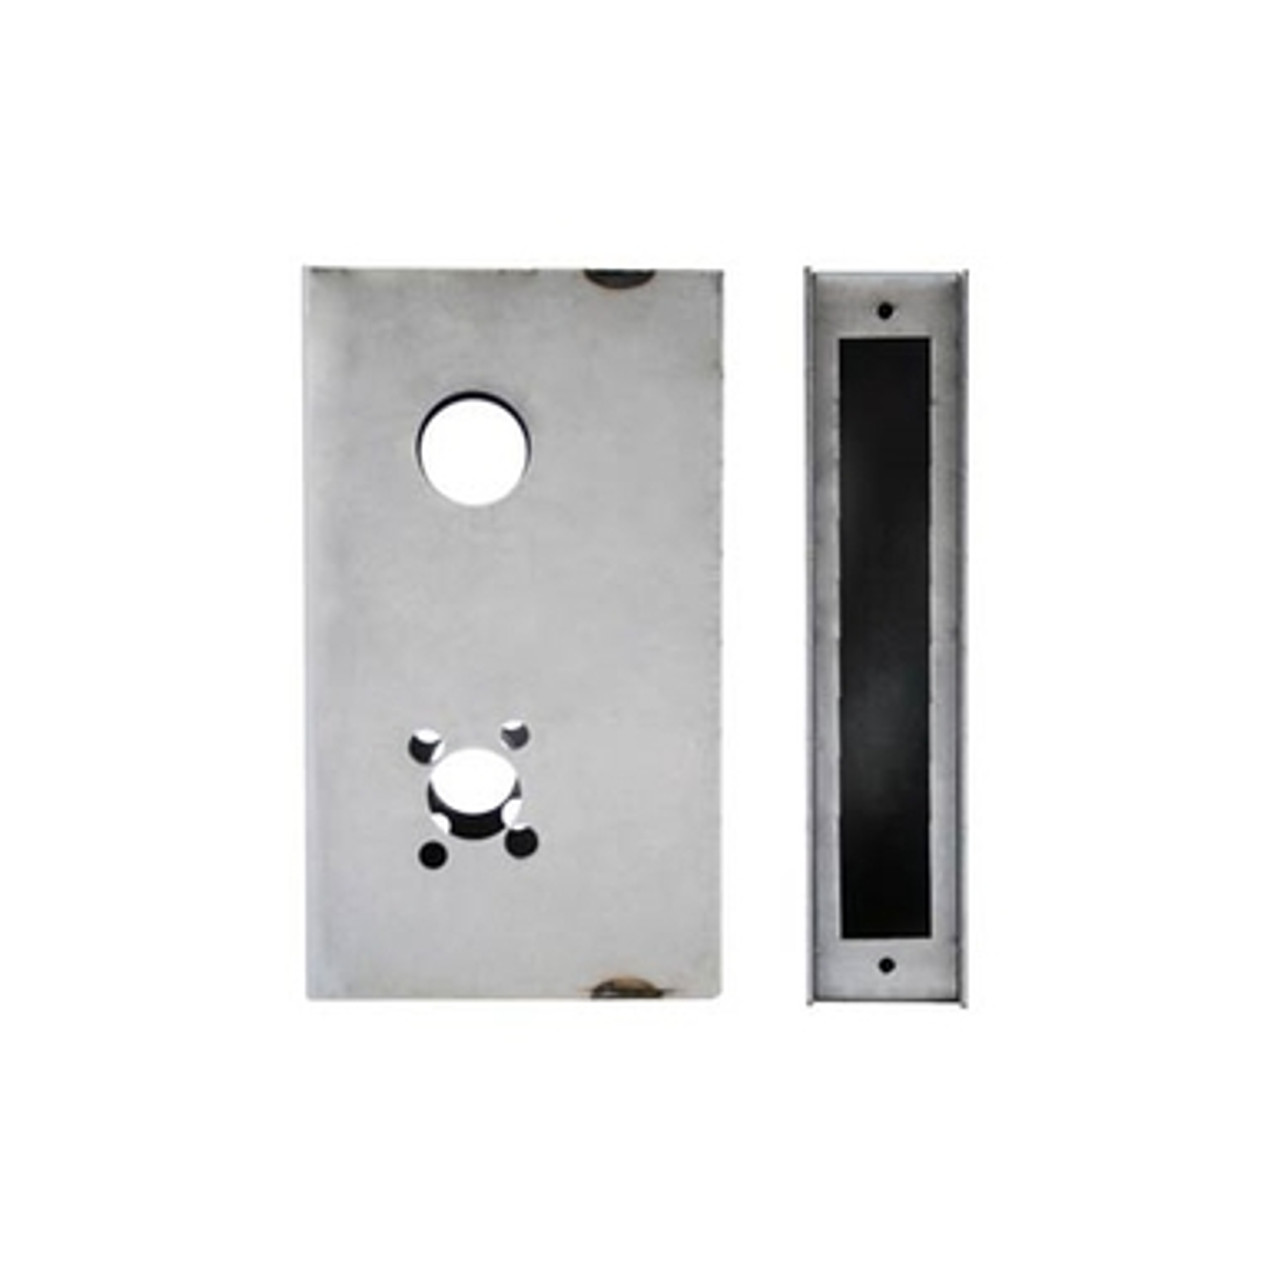 Keedex K Bxmor1 Mortise Weldable Box For Schlage L Series